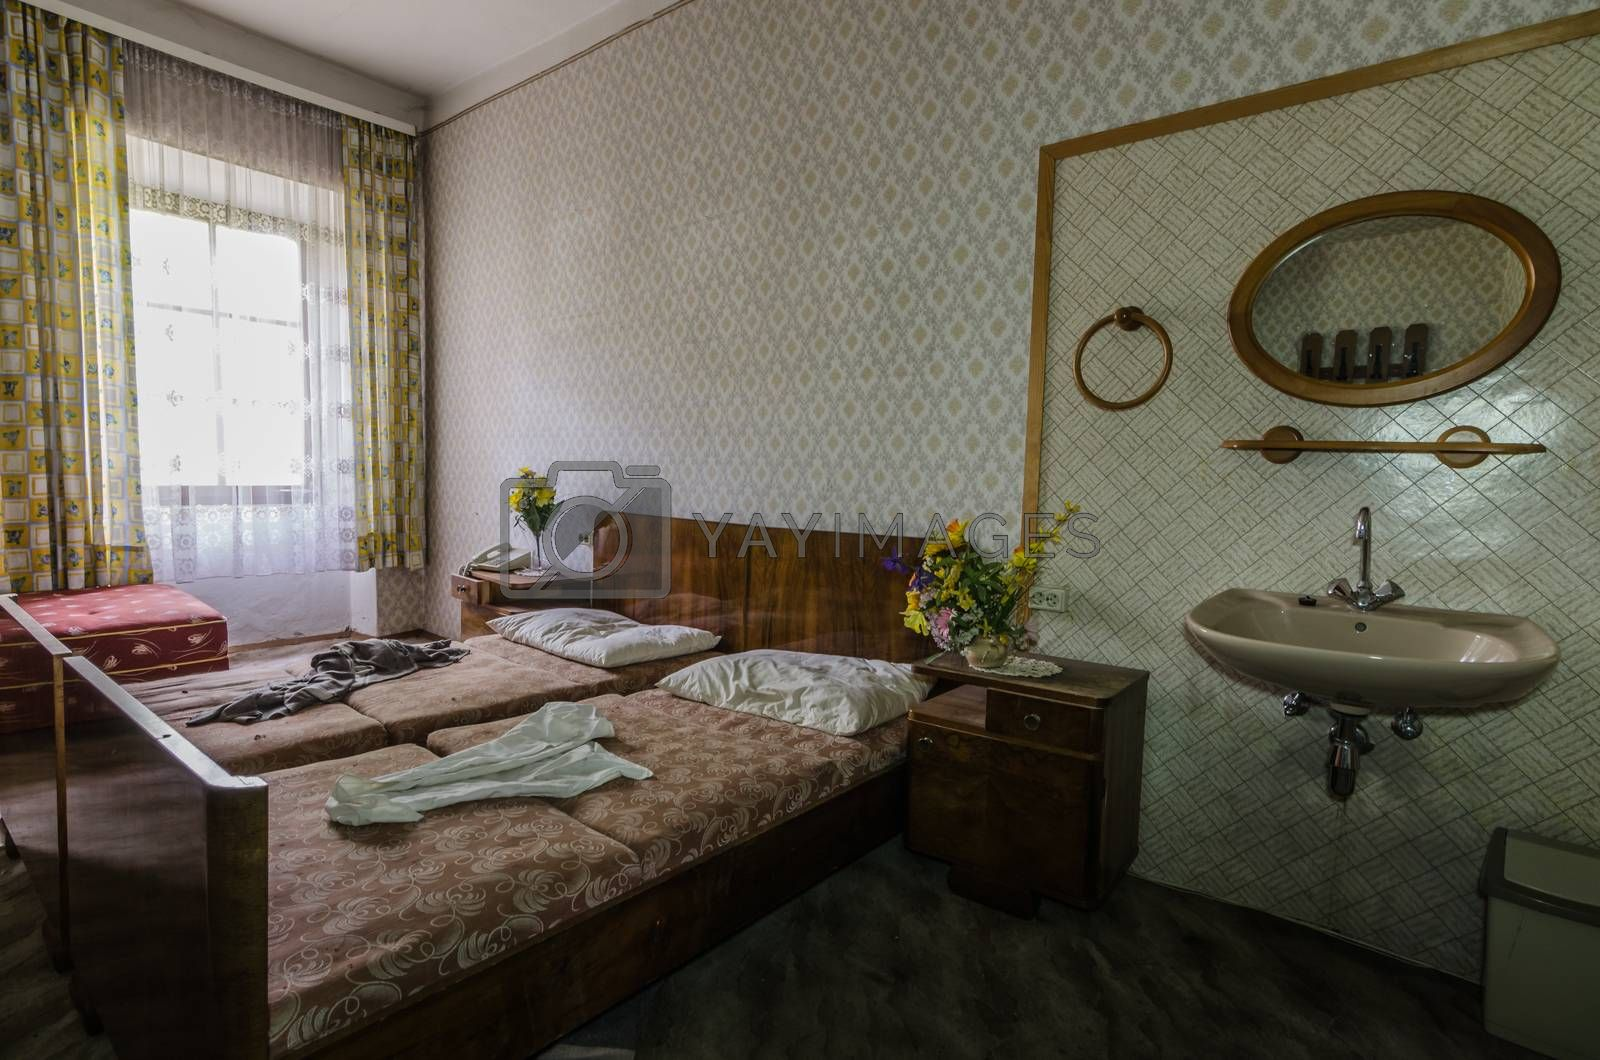 room with bed and mirror from a hotel by thomaseder